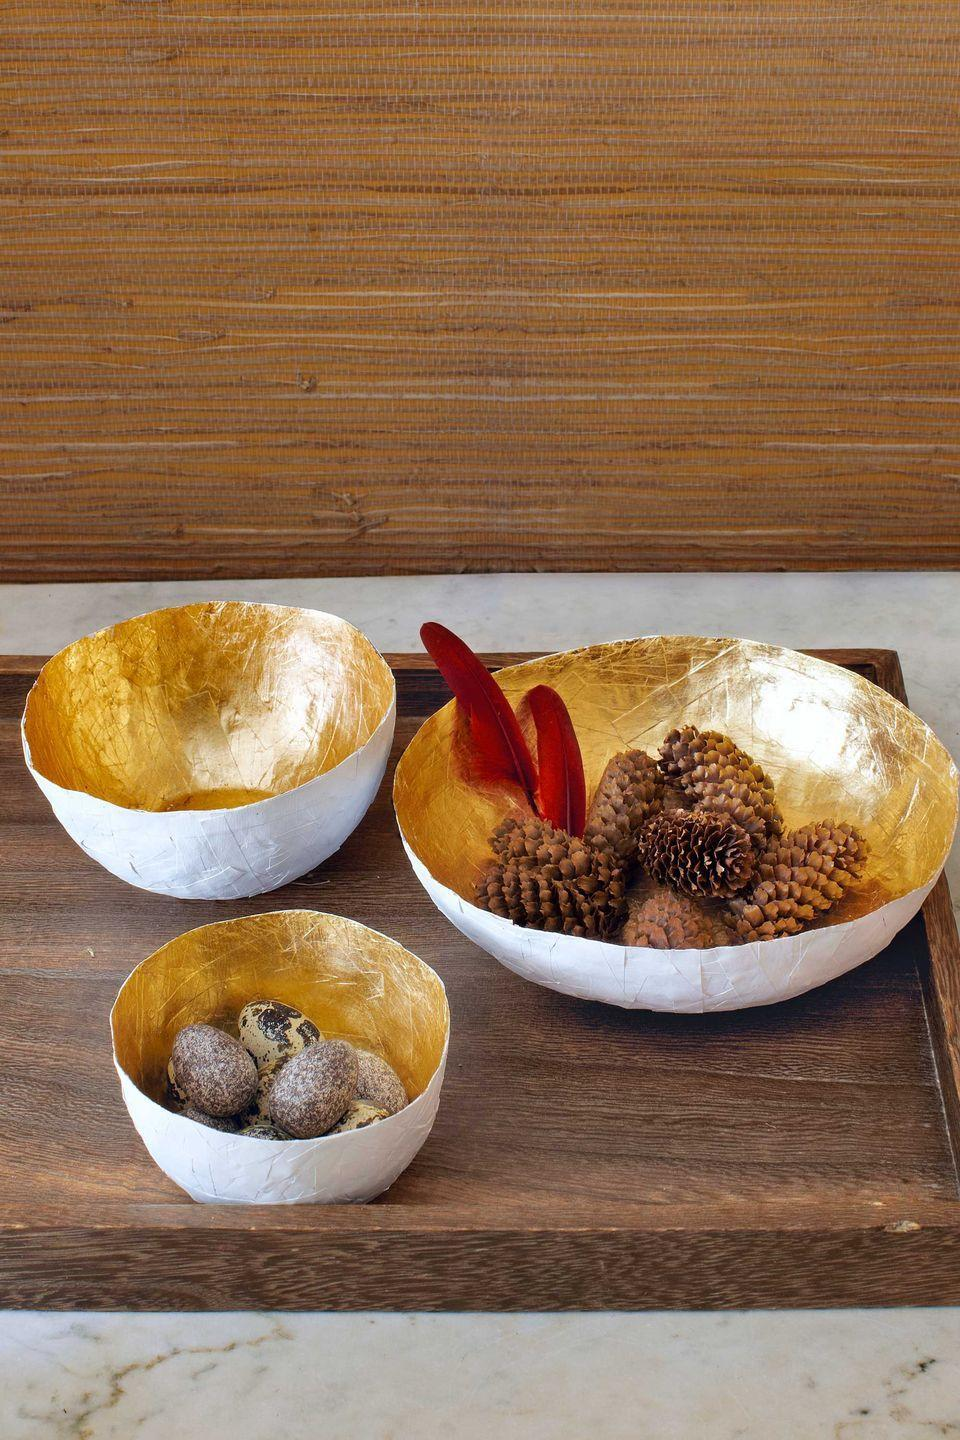 <p>Upcycle shredded paper into a set of gilded decorative bowls. First, choose a bowl (or multiple different-size bowls) to use as a mold. For each container you plan to create, follow these steps:</p><p><strong>Step 1:</strong> Tightly cover the outside of your bowl with plastic wrap, securing it on the inside with painter's tape, and turn upside down. In another bowl, mix equal parts Elmer's white school glue and water. Dip shredded paper into the mixture, evenly coating each piece; then lay the strips atop the plastic-wrapped bowl so they overlap, until the bowl's exterior is completely covered. Let dry for three hours.</p><p><strong>Step 2:</strong> Flip the bowl right side up and trim away any excess paper along the rim with scissors. Then, loosen and separate your paper bowl from the plastic-wrapped bowl.</p><p><strong>Step 3:</strong> Paint the interior of your paper bowl with white acrylic paint and let it dry for one hour; then paint the exterior and let it dry for an hour.</p><p><strong>Step 4:</strong> Cover the outside of your paper bowl with wax paper, securing it to the bowl's outer rim with painter's tape. Next, apply gold leaf to the bowl's interior. Follow the package instructions, and let set overnight.</p><p><strong>Step 5: </strong>Apply neutral-toned Liberon Wax to the interior of the bowl with a soft cloth. Allow the wax to set for an hour, then gently buff to a shine with a clean soft cloth. Finally, remove the tape and wax paper, and display a few treasures in your lustrous vessel.</p>